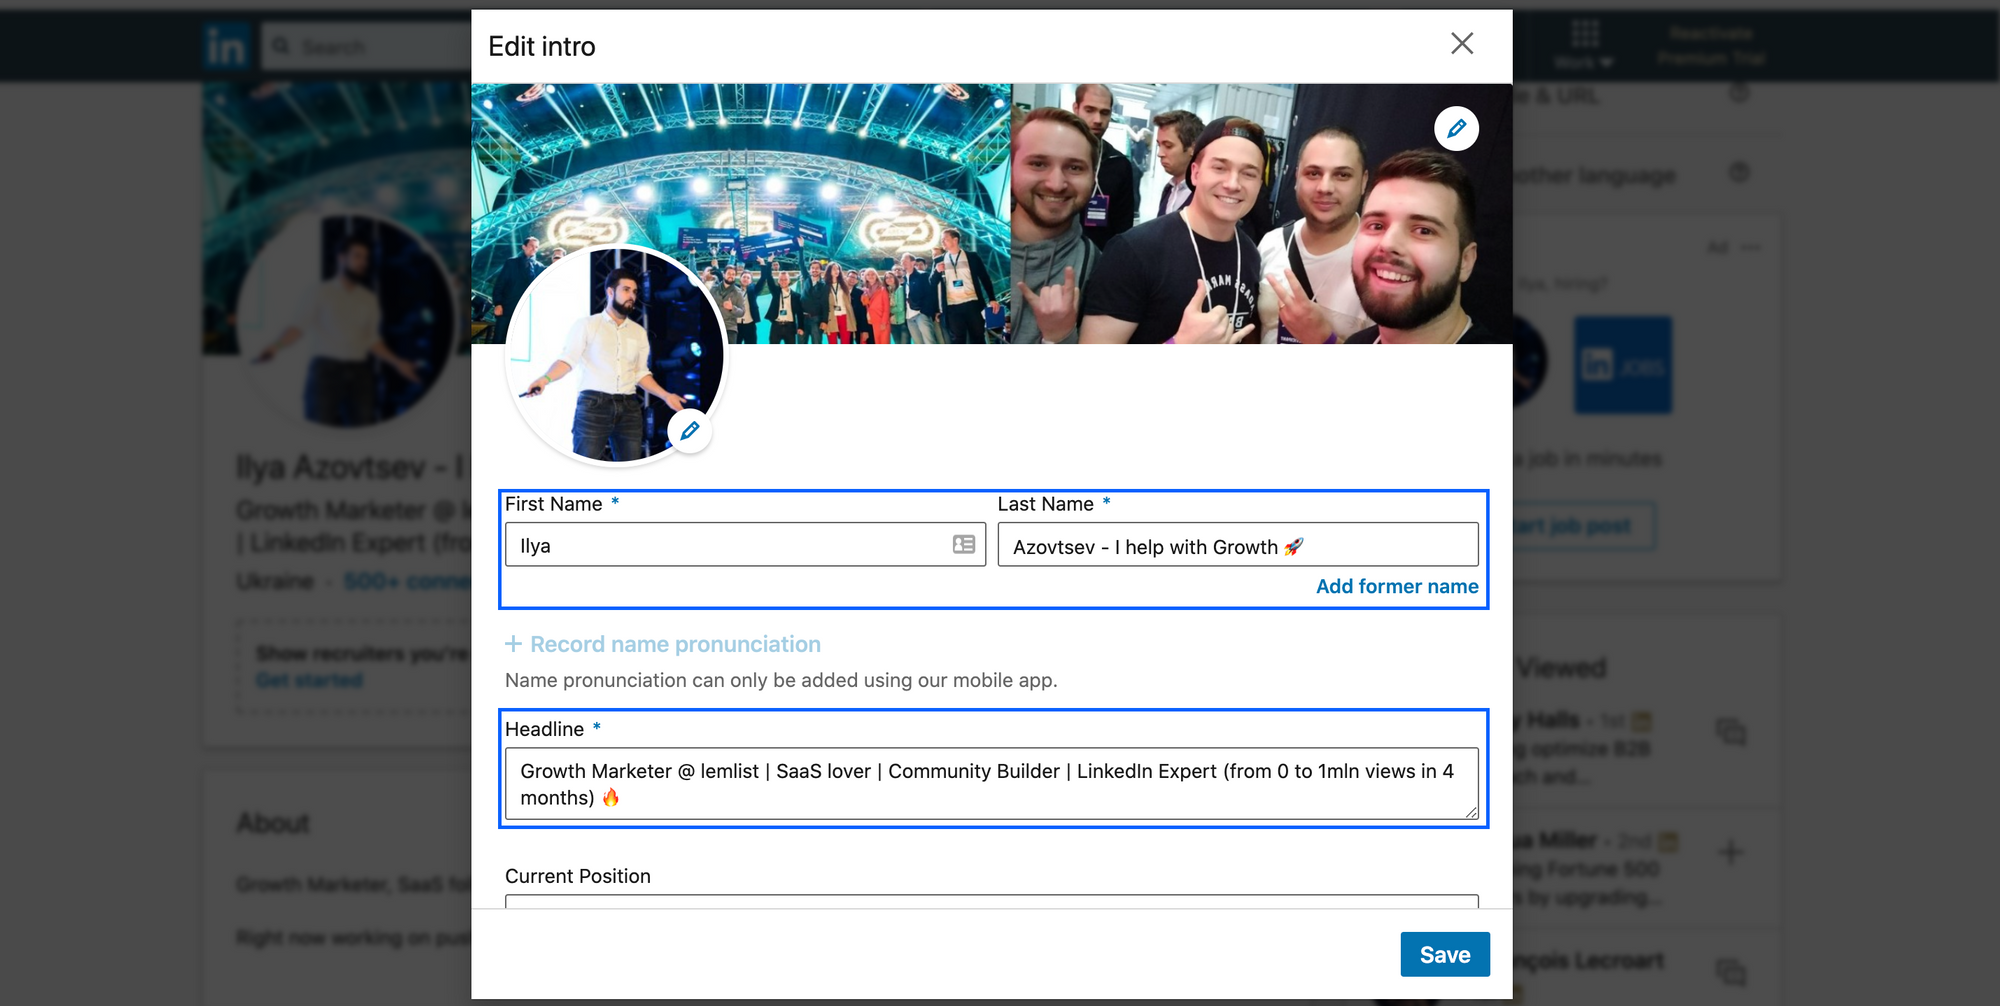 Optimized LinkedIn profile for best connection rate